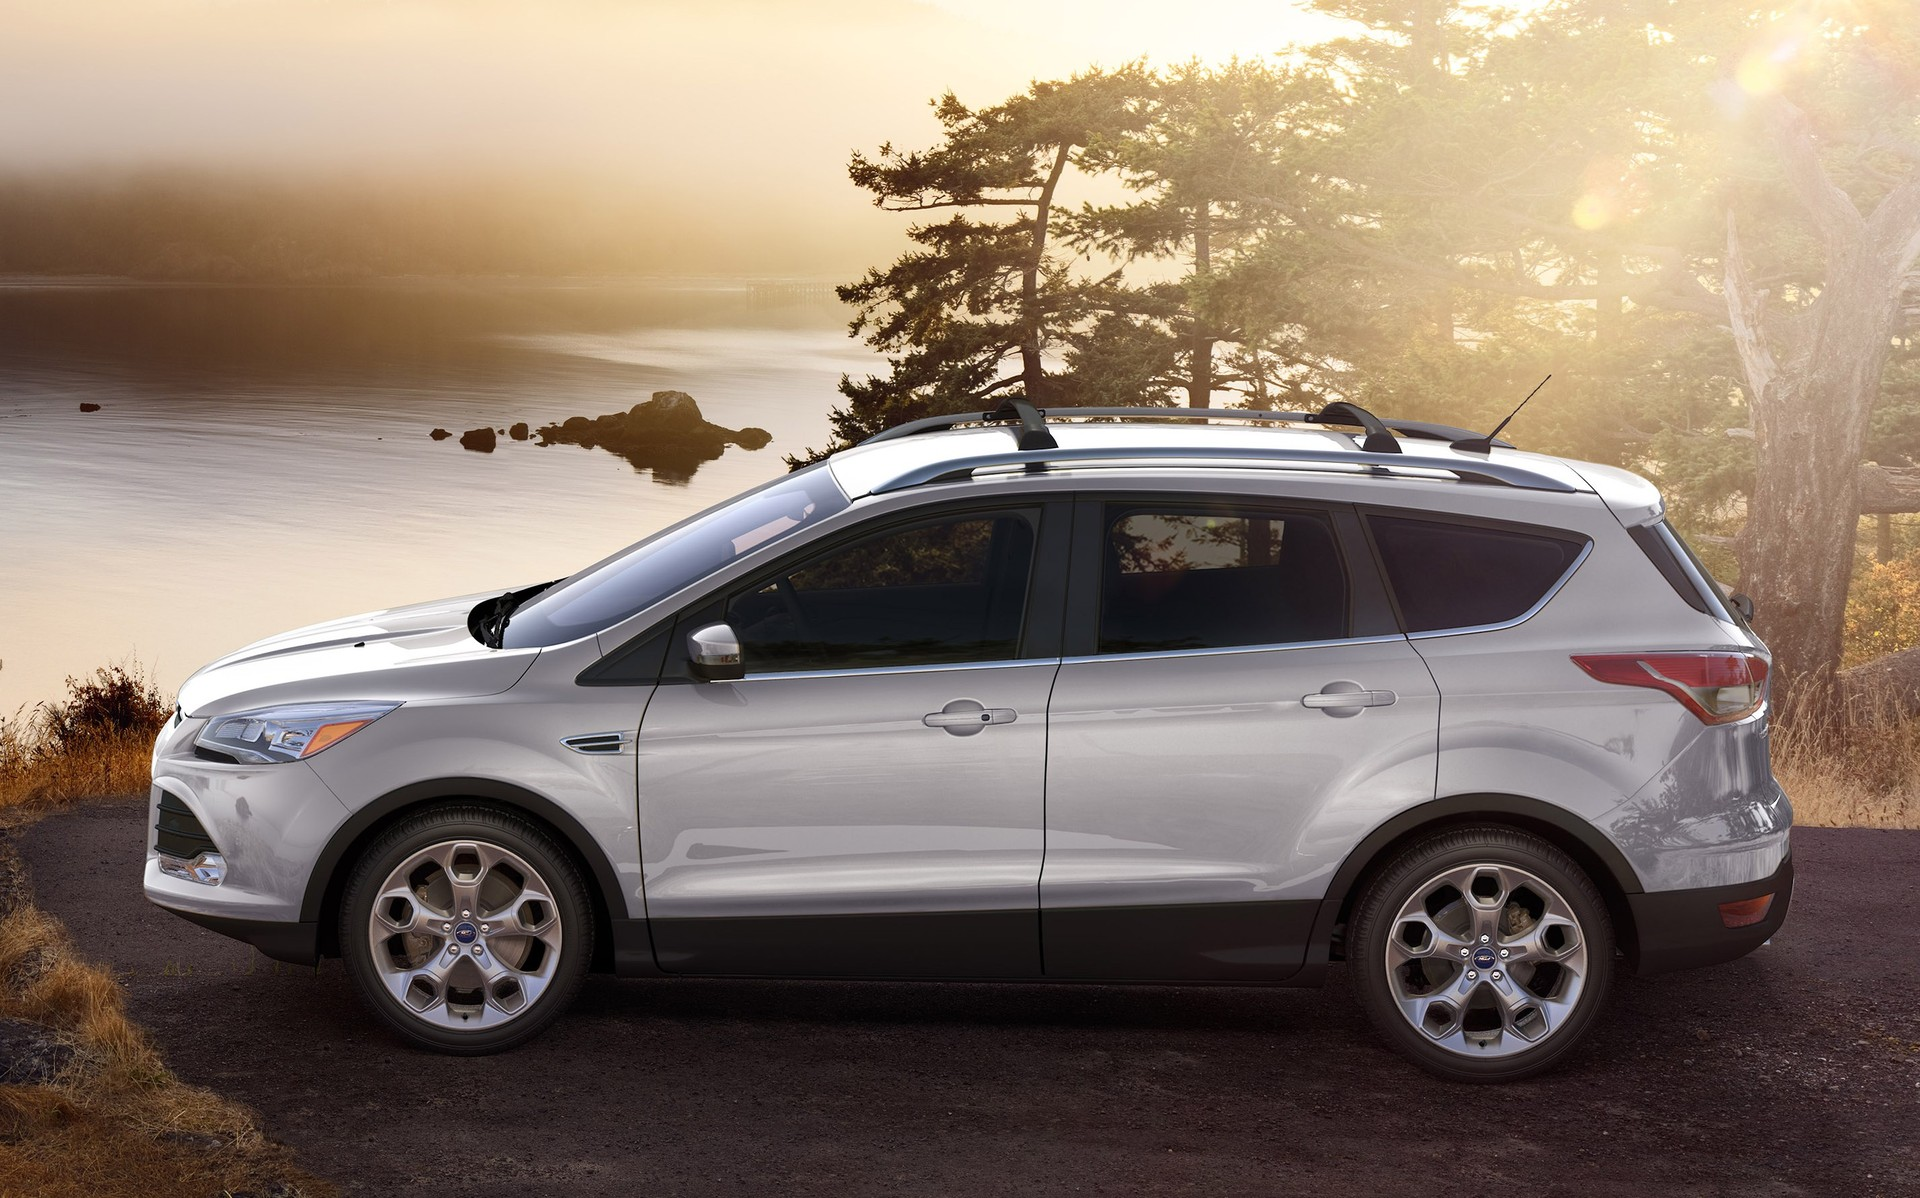 new and used ford escape prices photos reviews specs the car connection. Black Bedroom Furniture Sets. Home Design Ideas